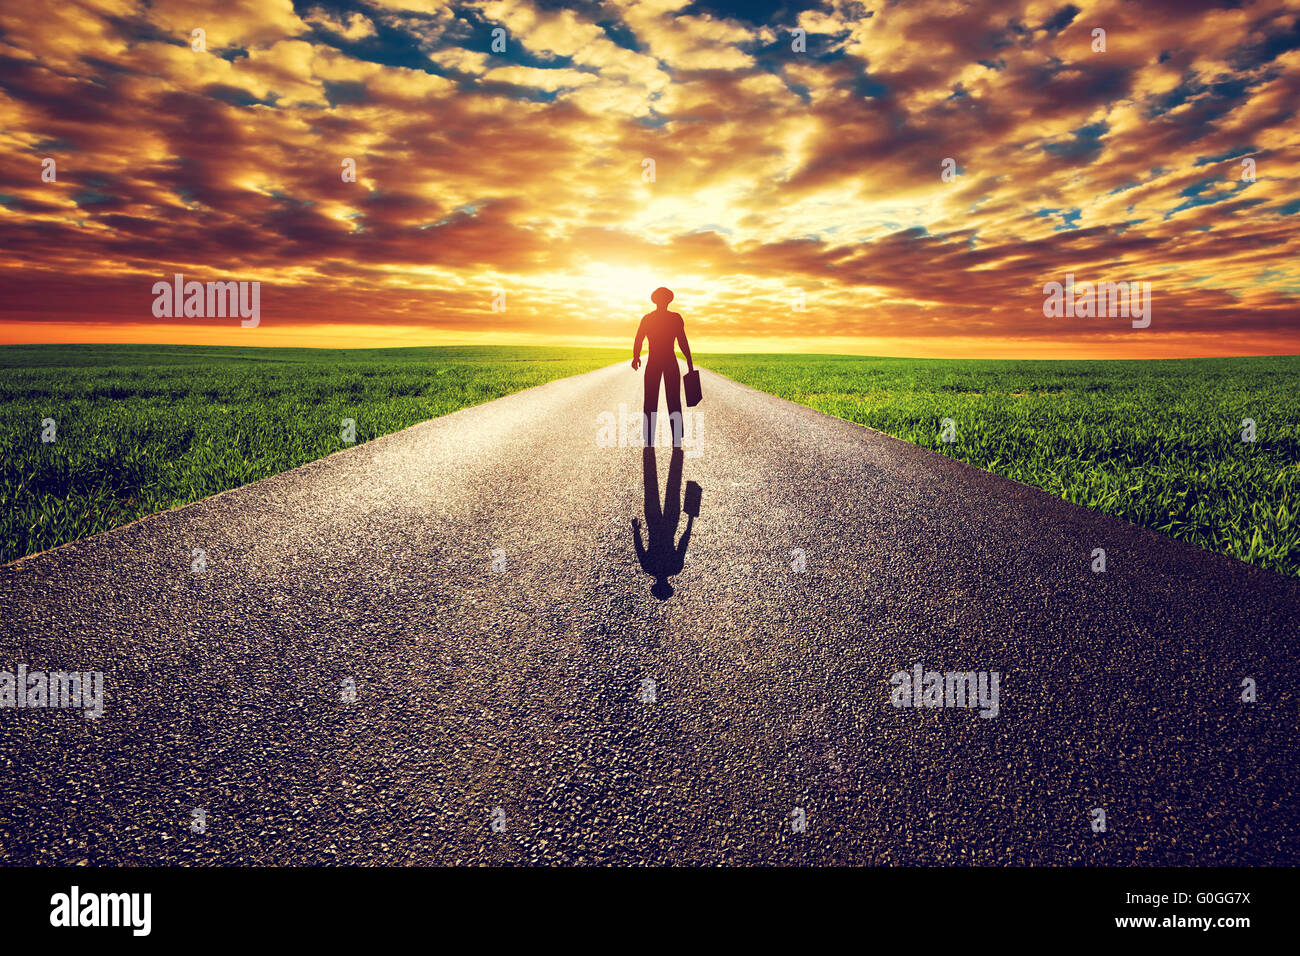 Man with suitcase and hat on long straight road towards sunset sky. Travel - Stock Image